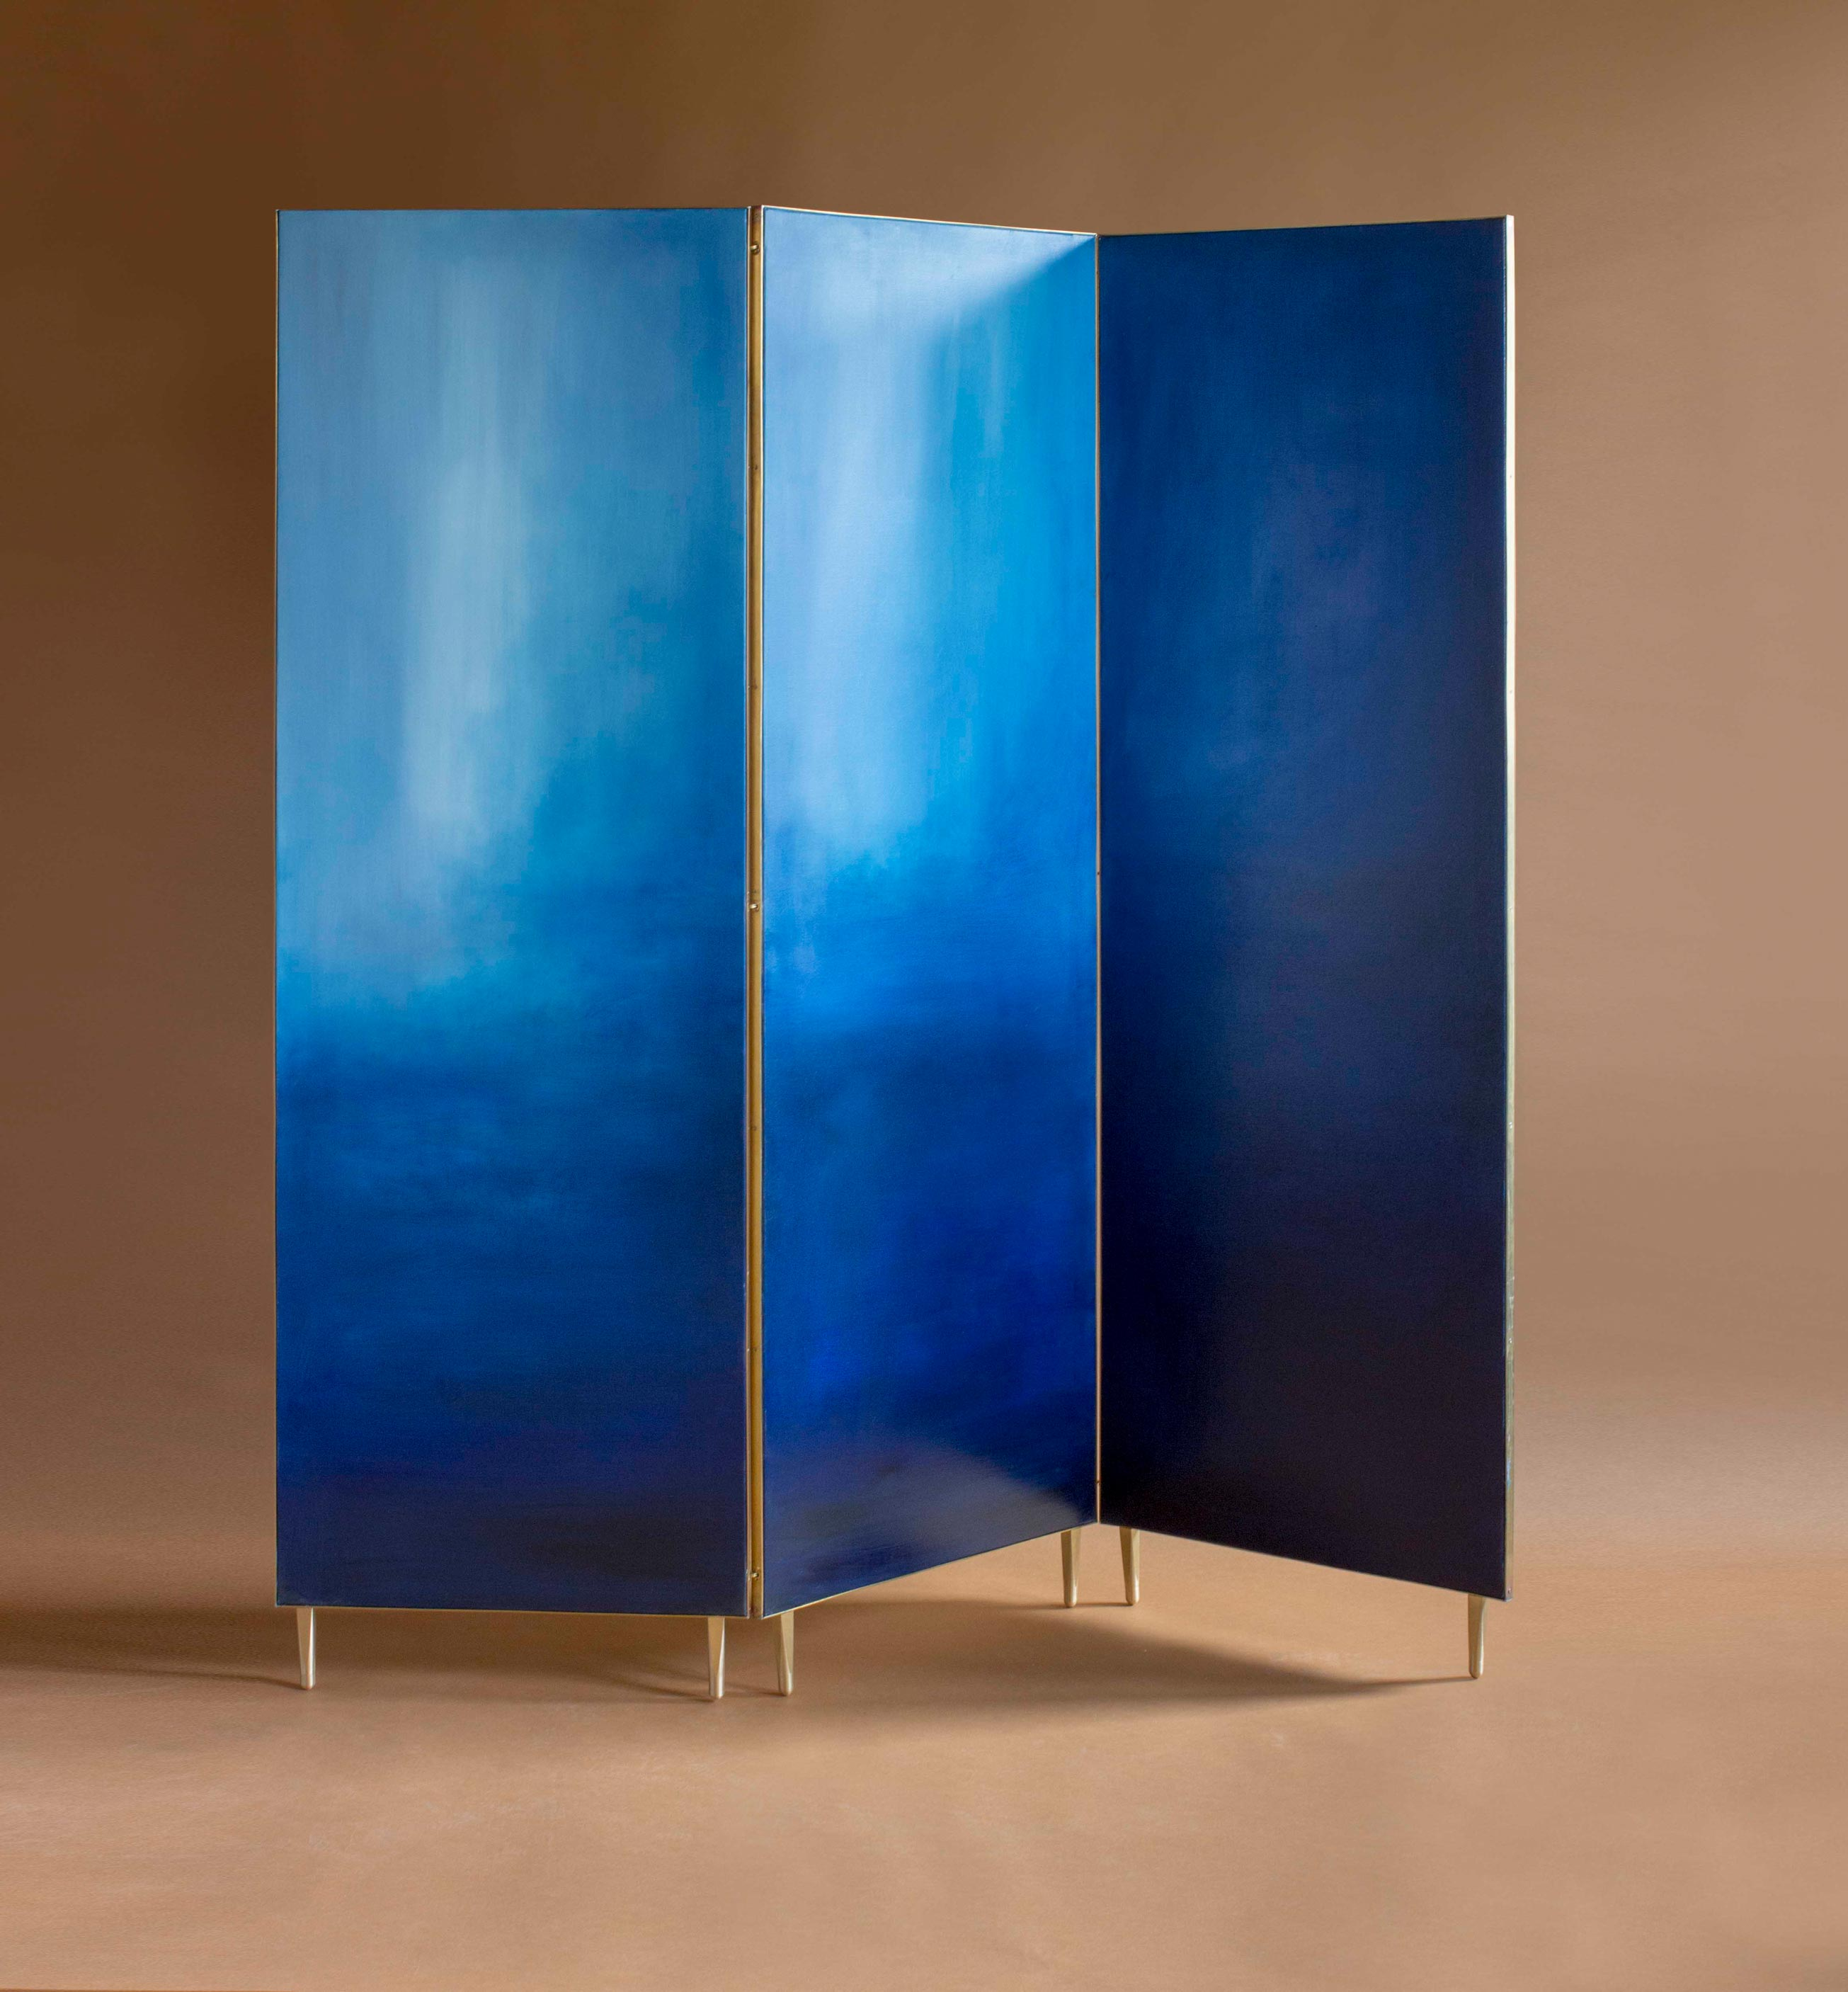 Hand Painted Screen - Hand painted cloth in a full brass frame. It is a delicate solution to divide the space. Each screen is different and unusual because of the painting created by the artist. The screens are available in three different colors.